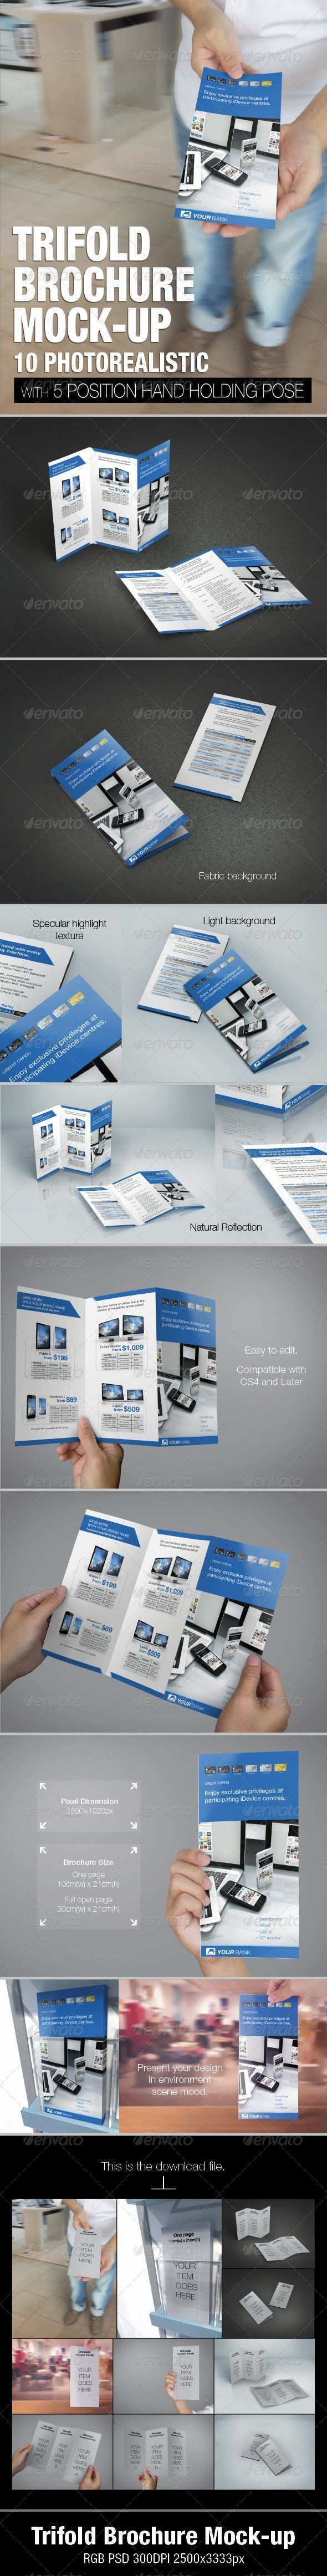 Trifold brochure mockup — Photoshop PSD #idevice #holding • Available here → https://graphicriver.net/item/trifold-brochure-mockup/5131050?ref=pxcr